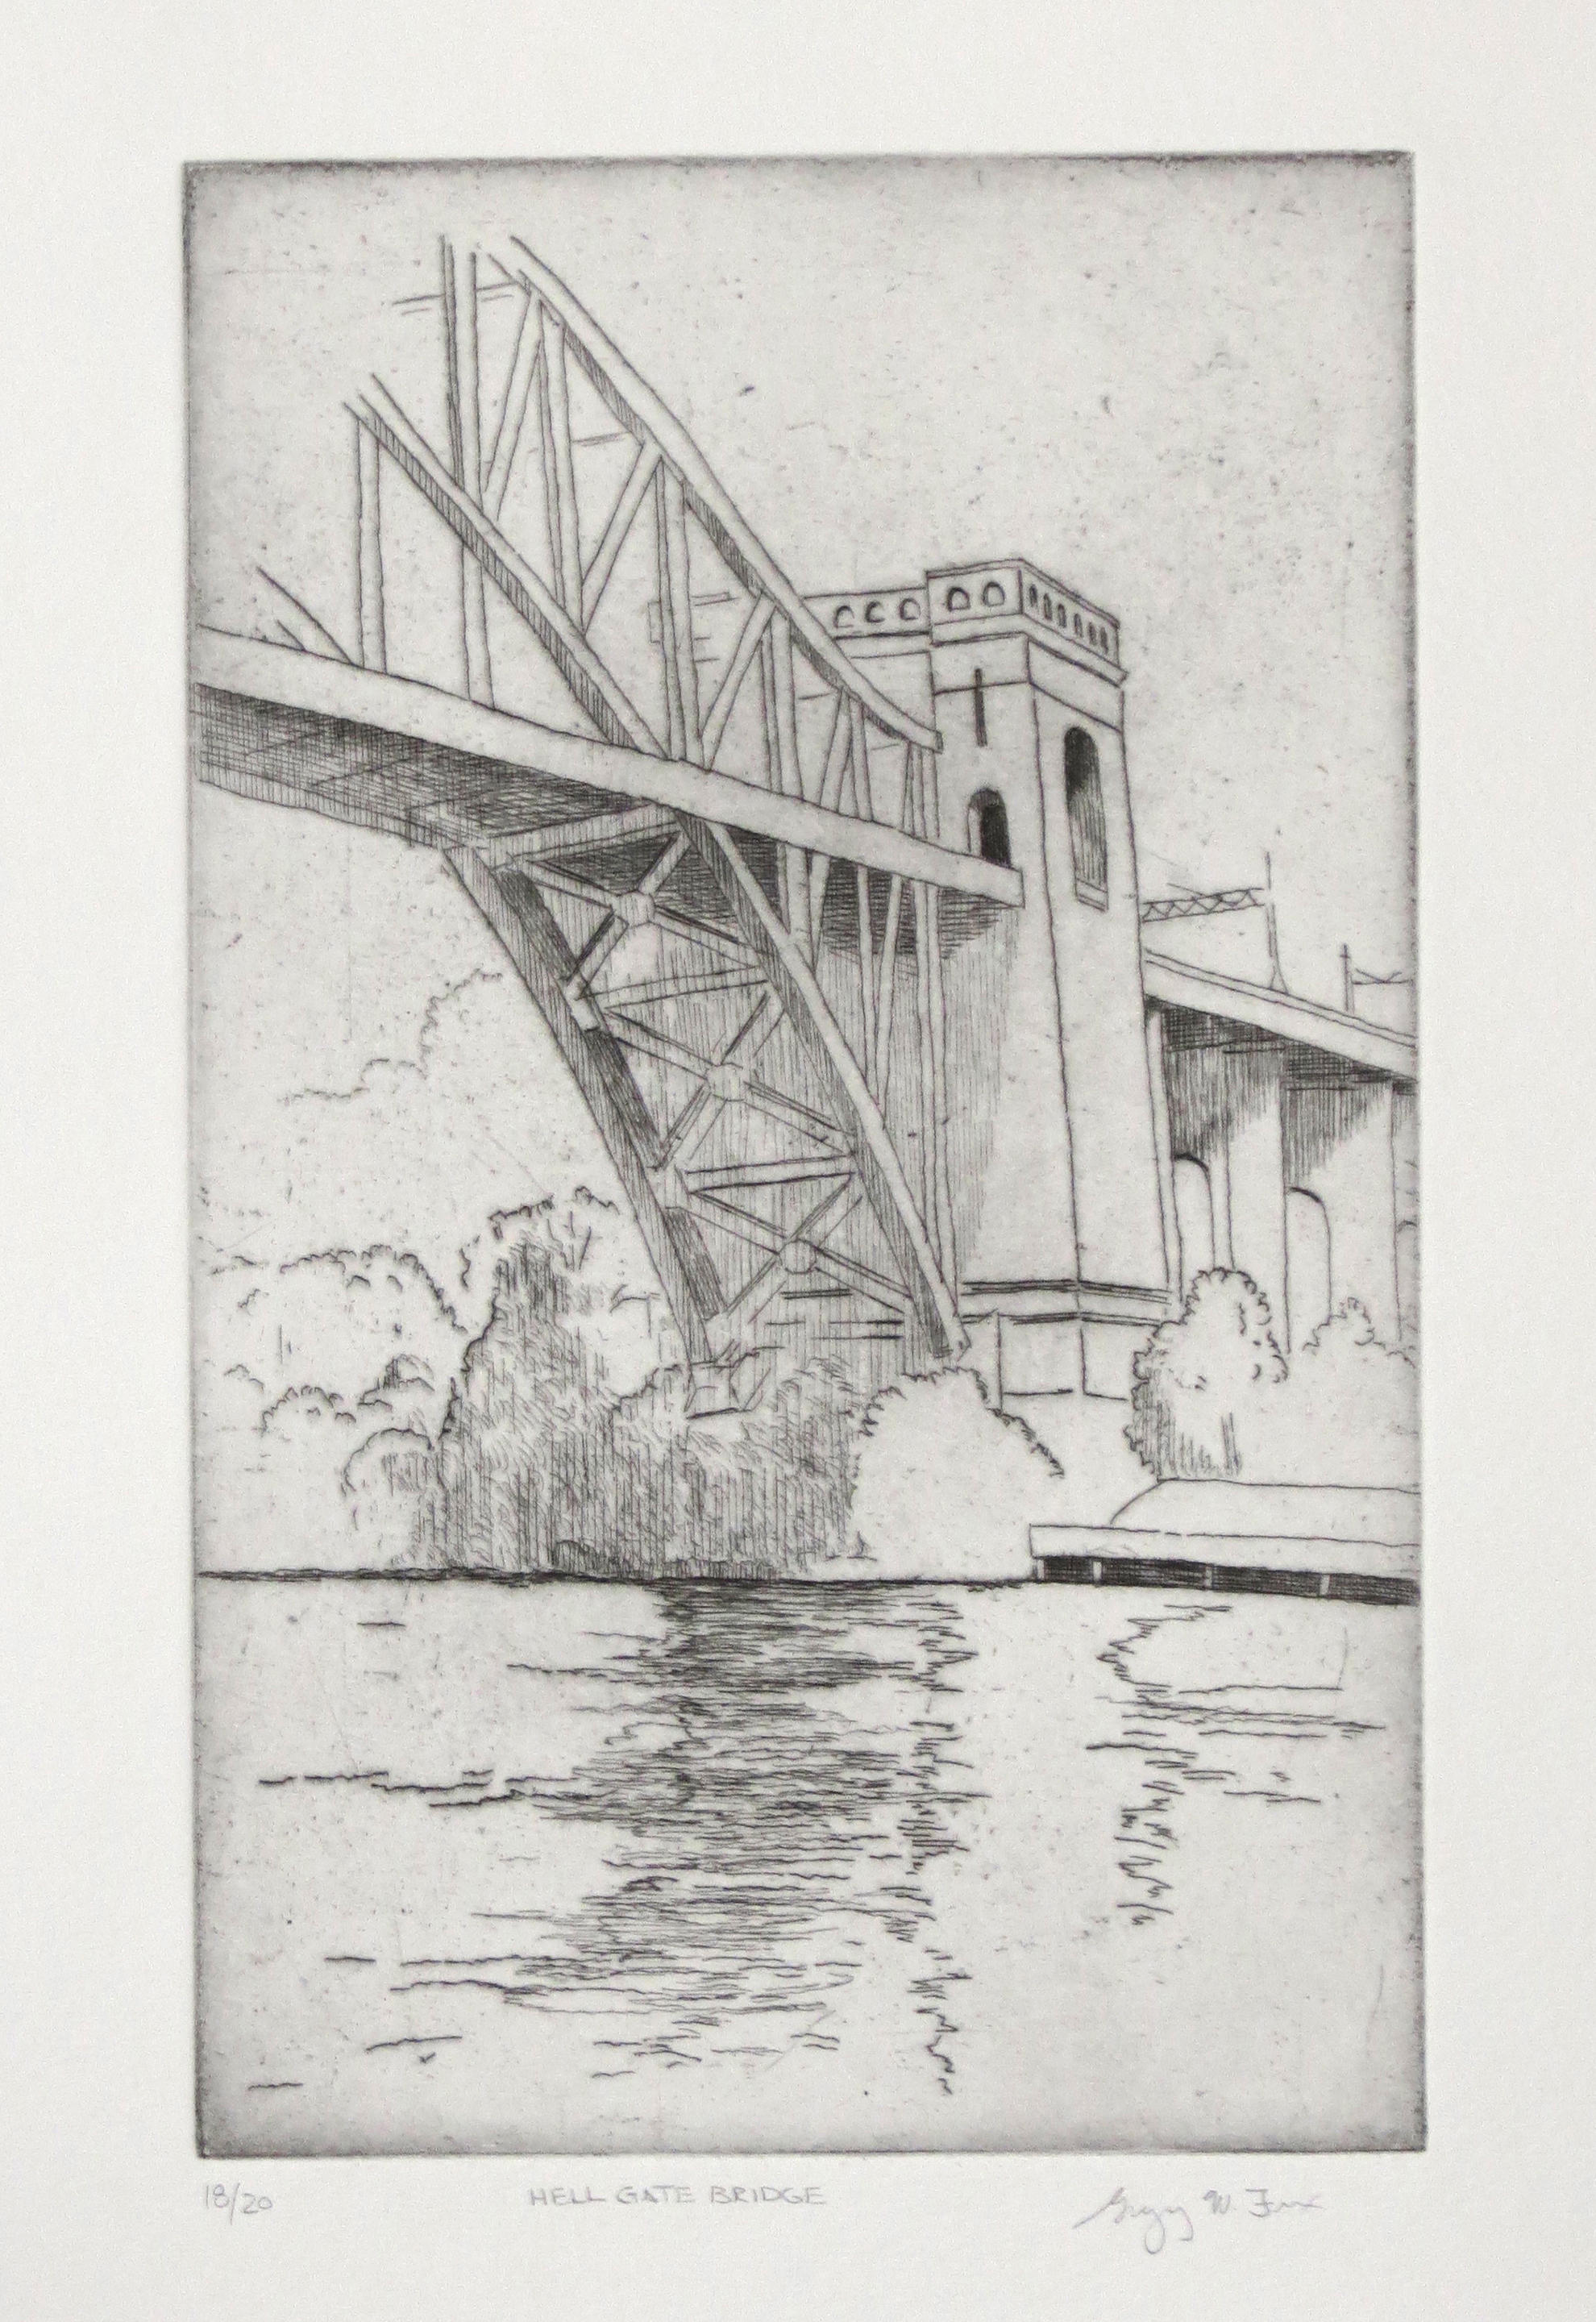 Hell Gate Bridge, etching